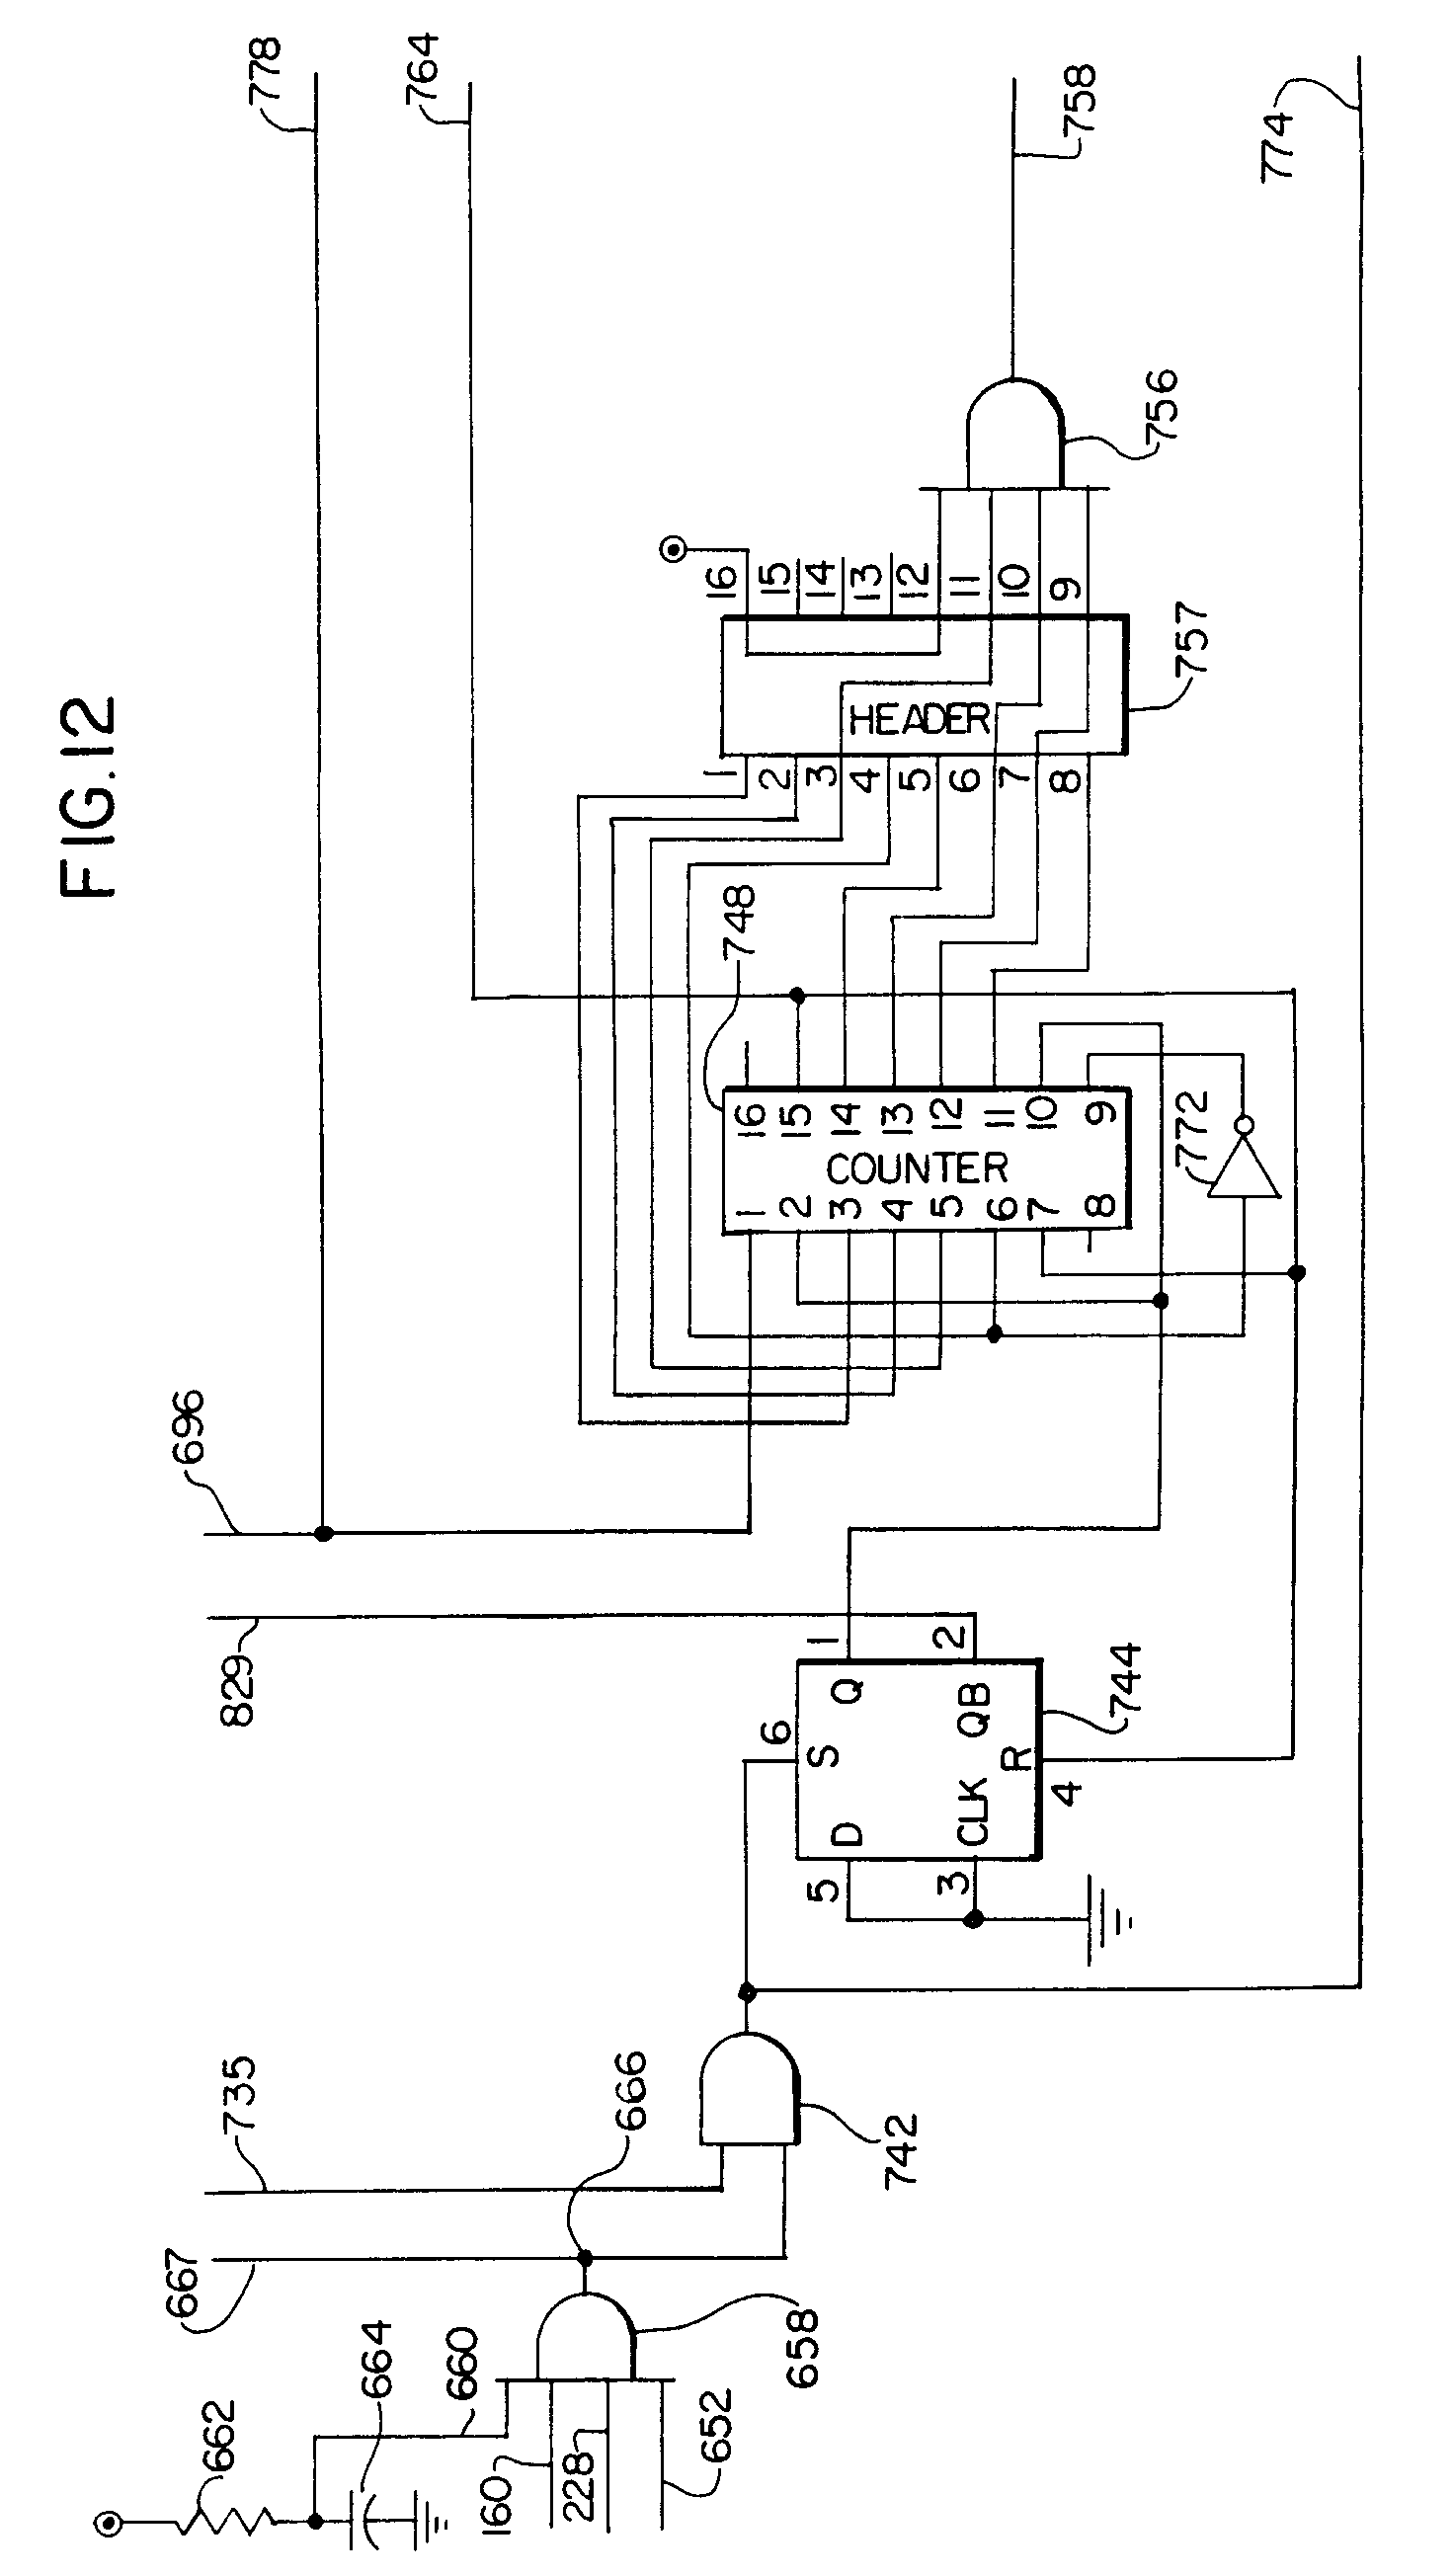 Model Wiring Kenmore For Schematic Refrigerator 1069552681 Ford 8n Wiring Harness Diagram For Wiring Diagram Schematics